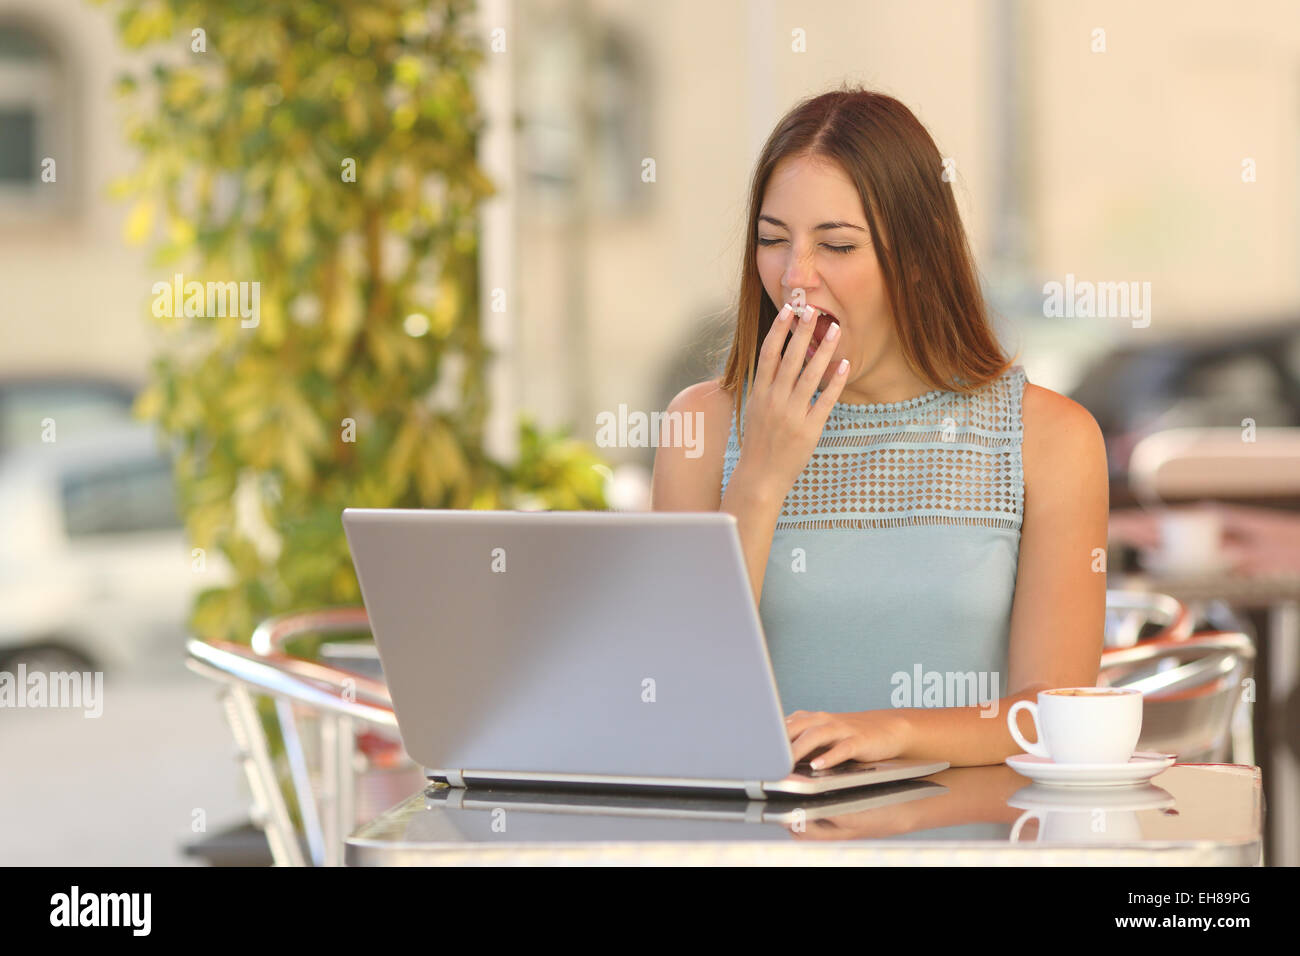 Tired woman yawning and working with a laptop in a restaurant during breakfast - Stock Image